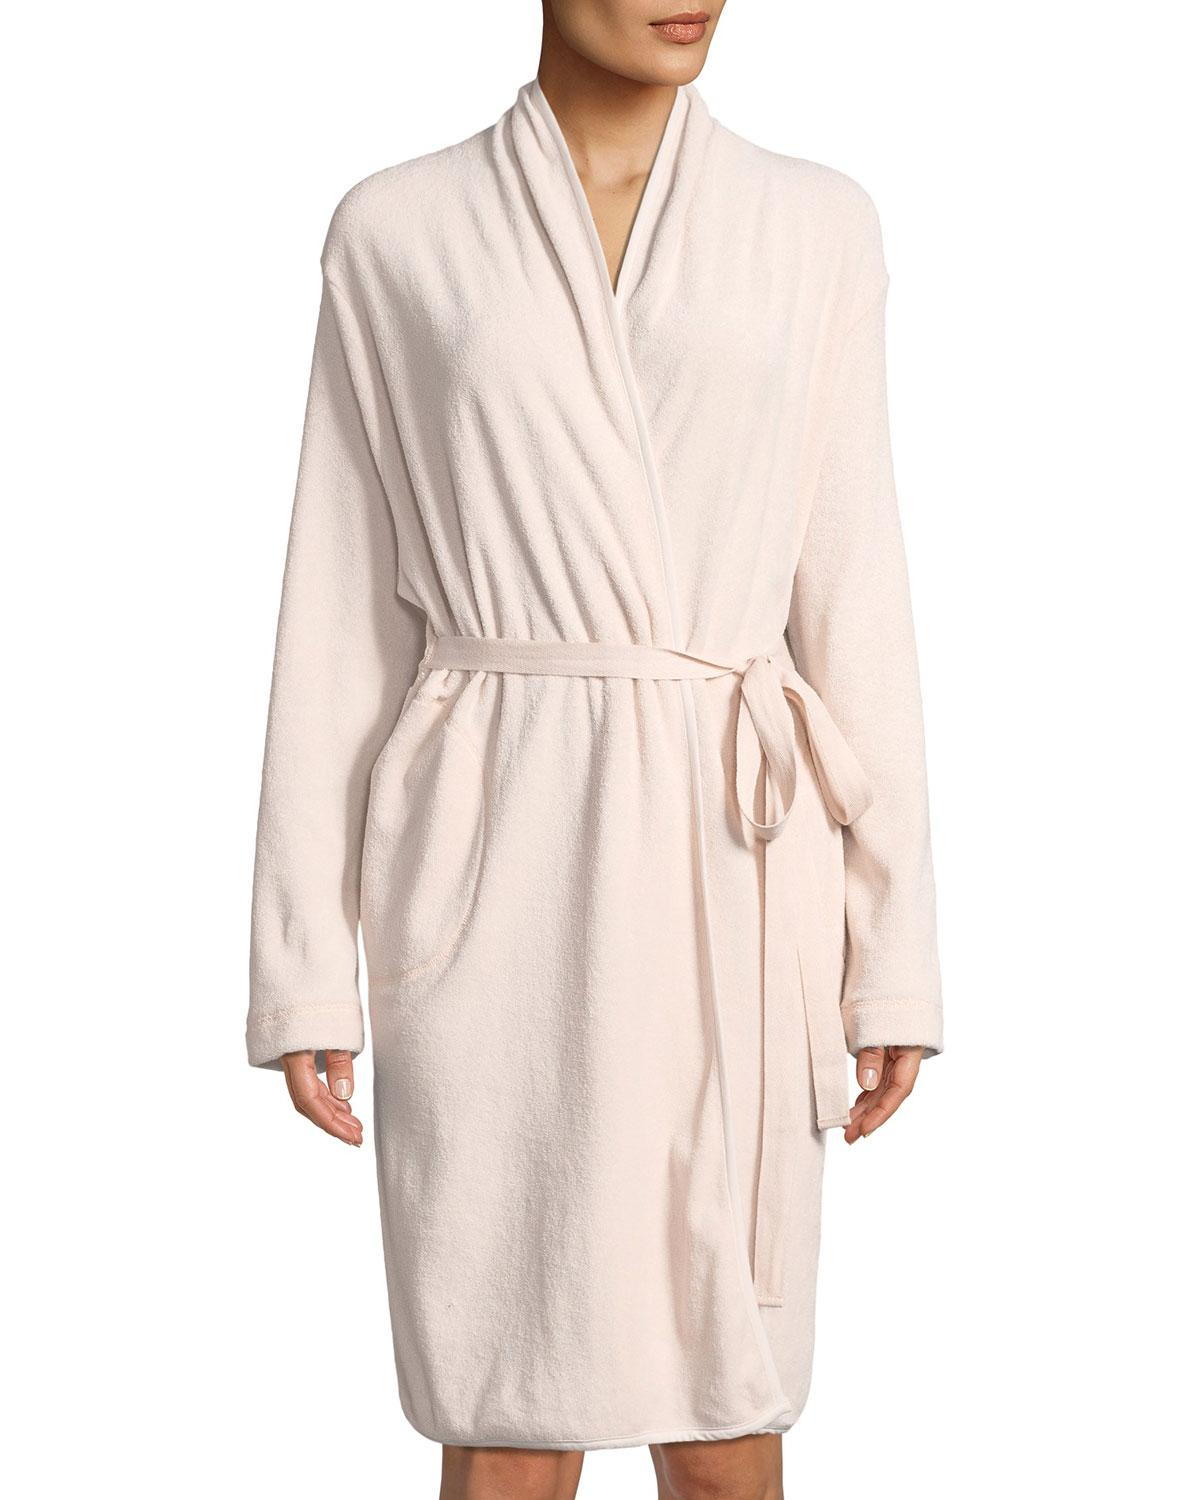 6ca778b965 Lyst - Skin French Terry Short Robe in Pink